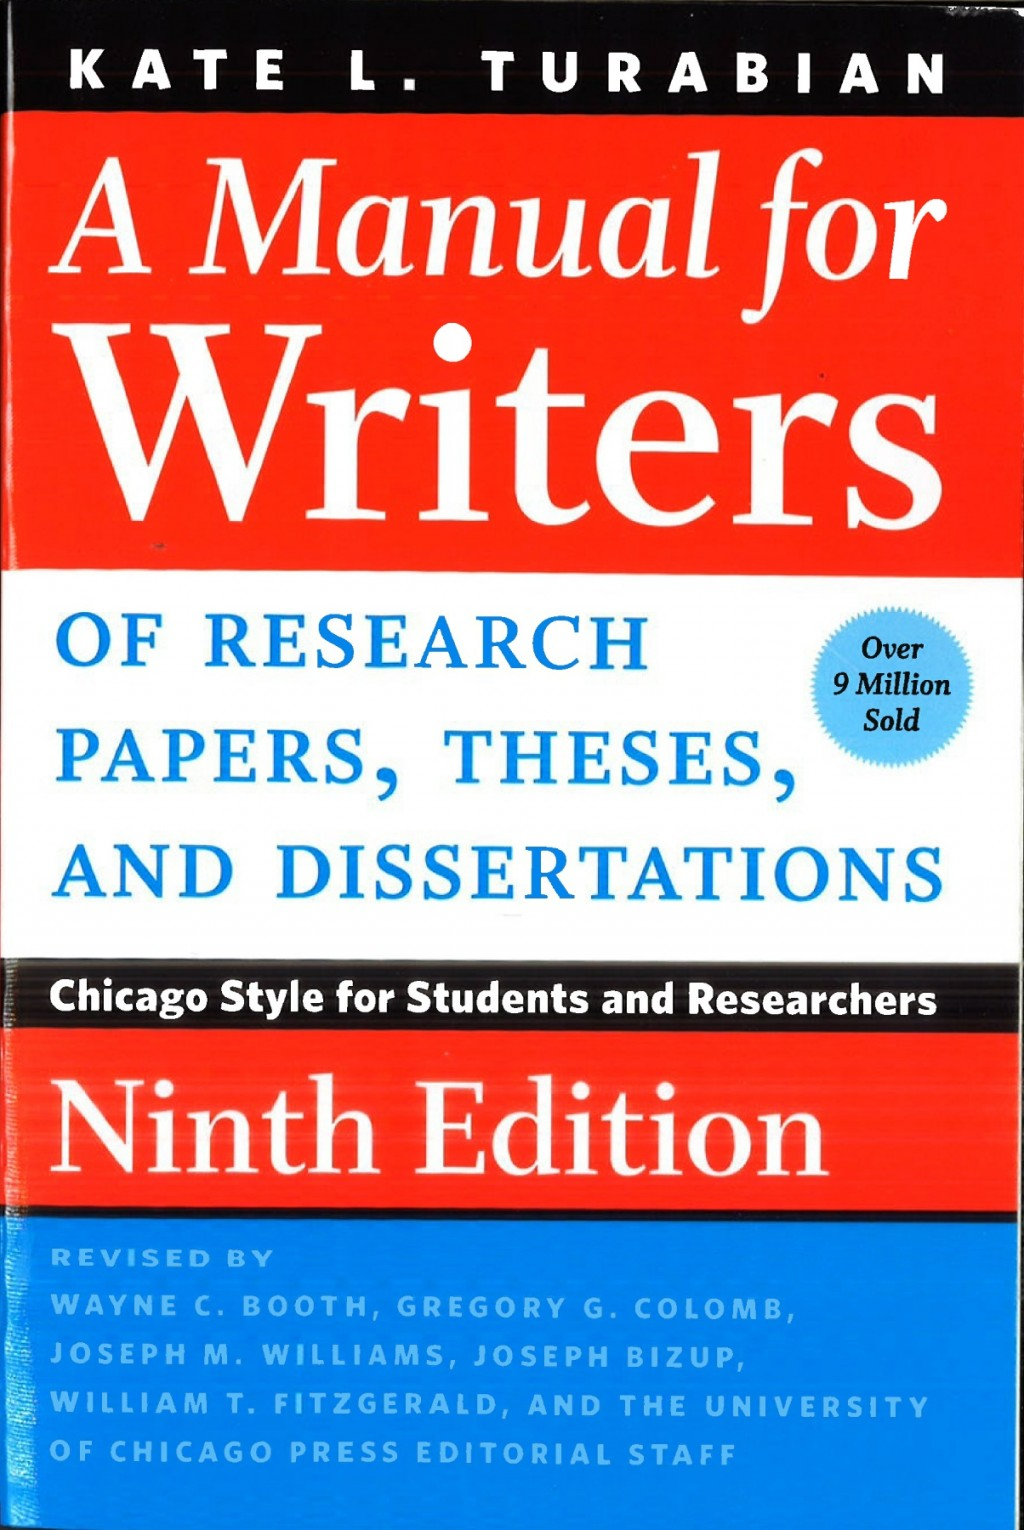 005 Research Paper Manual For Writers Of Papers Theses And Dissertations 9th Frightening A Edition Pdf Large